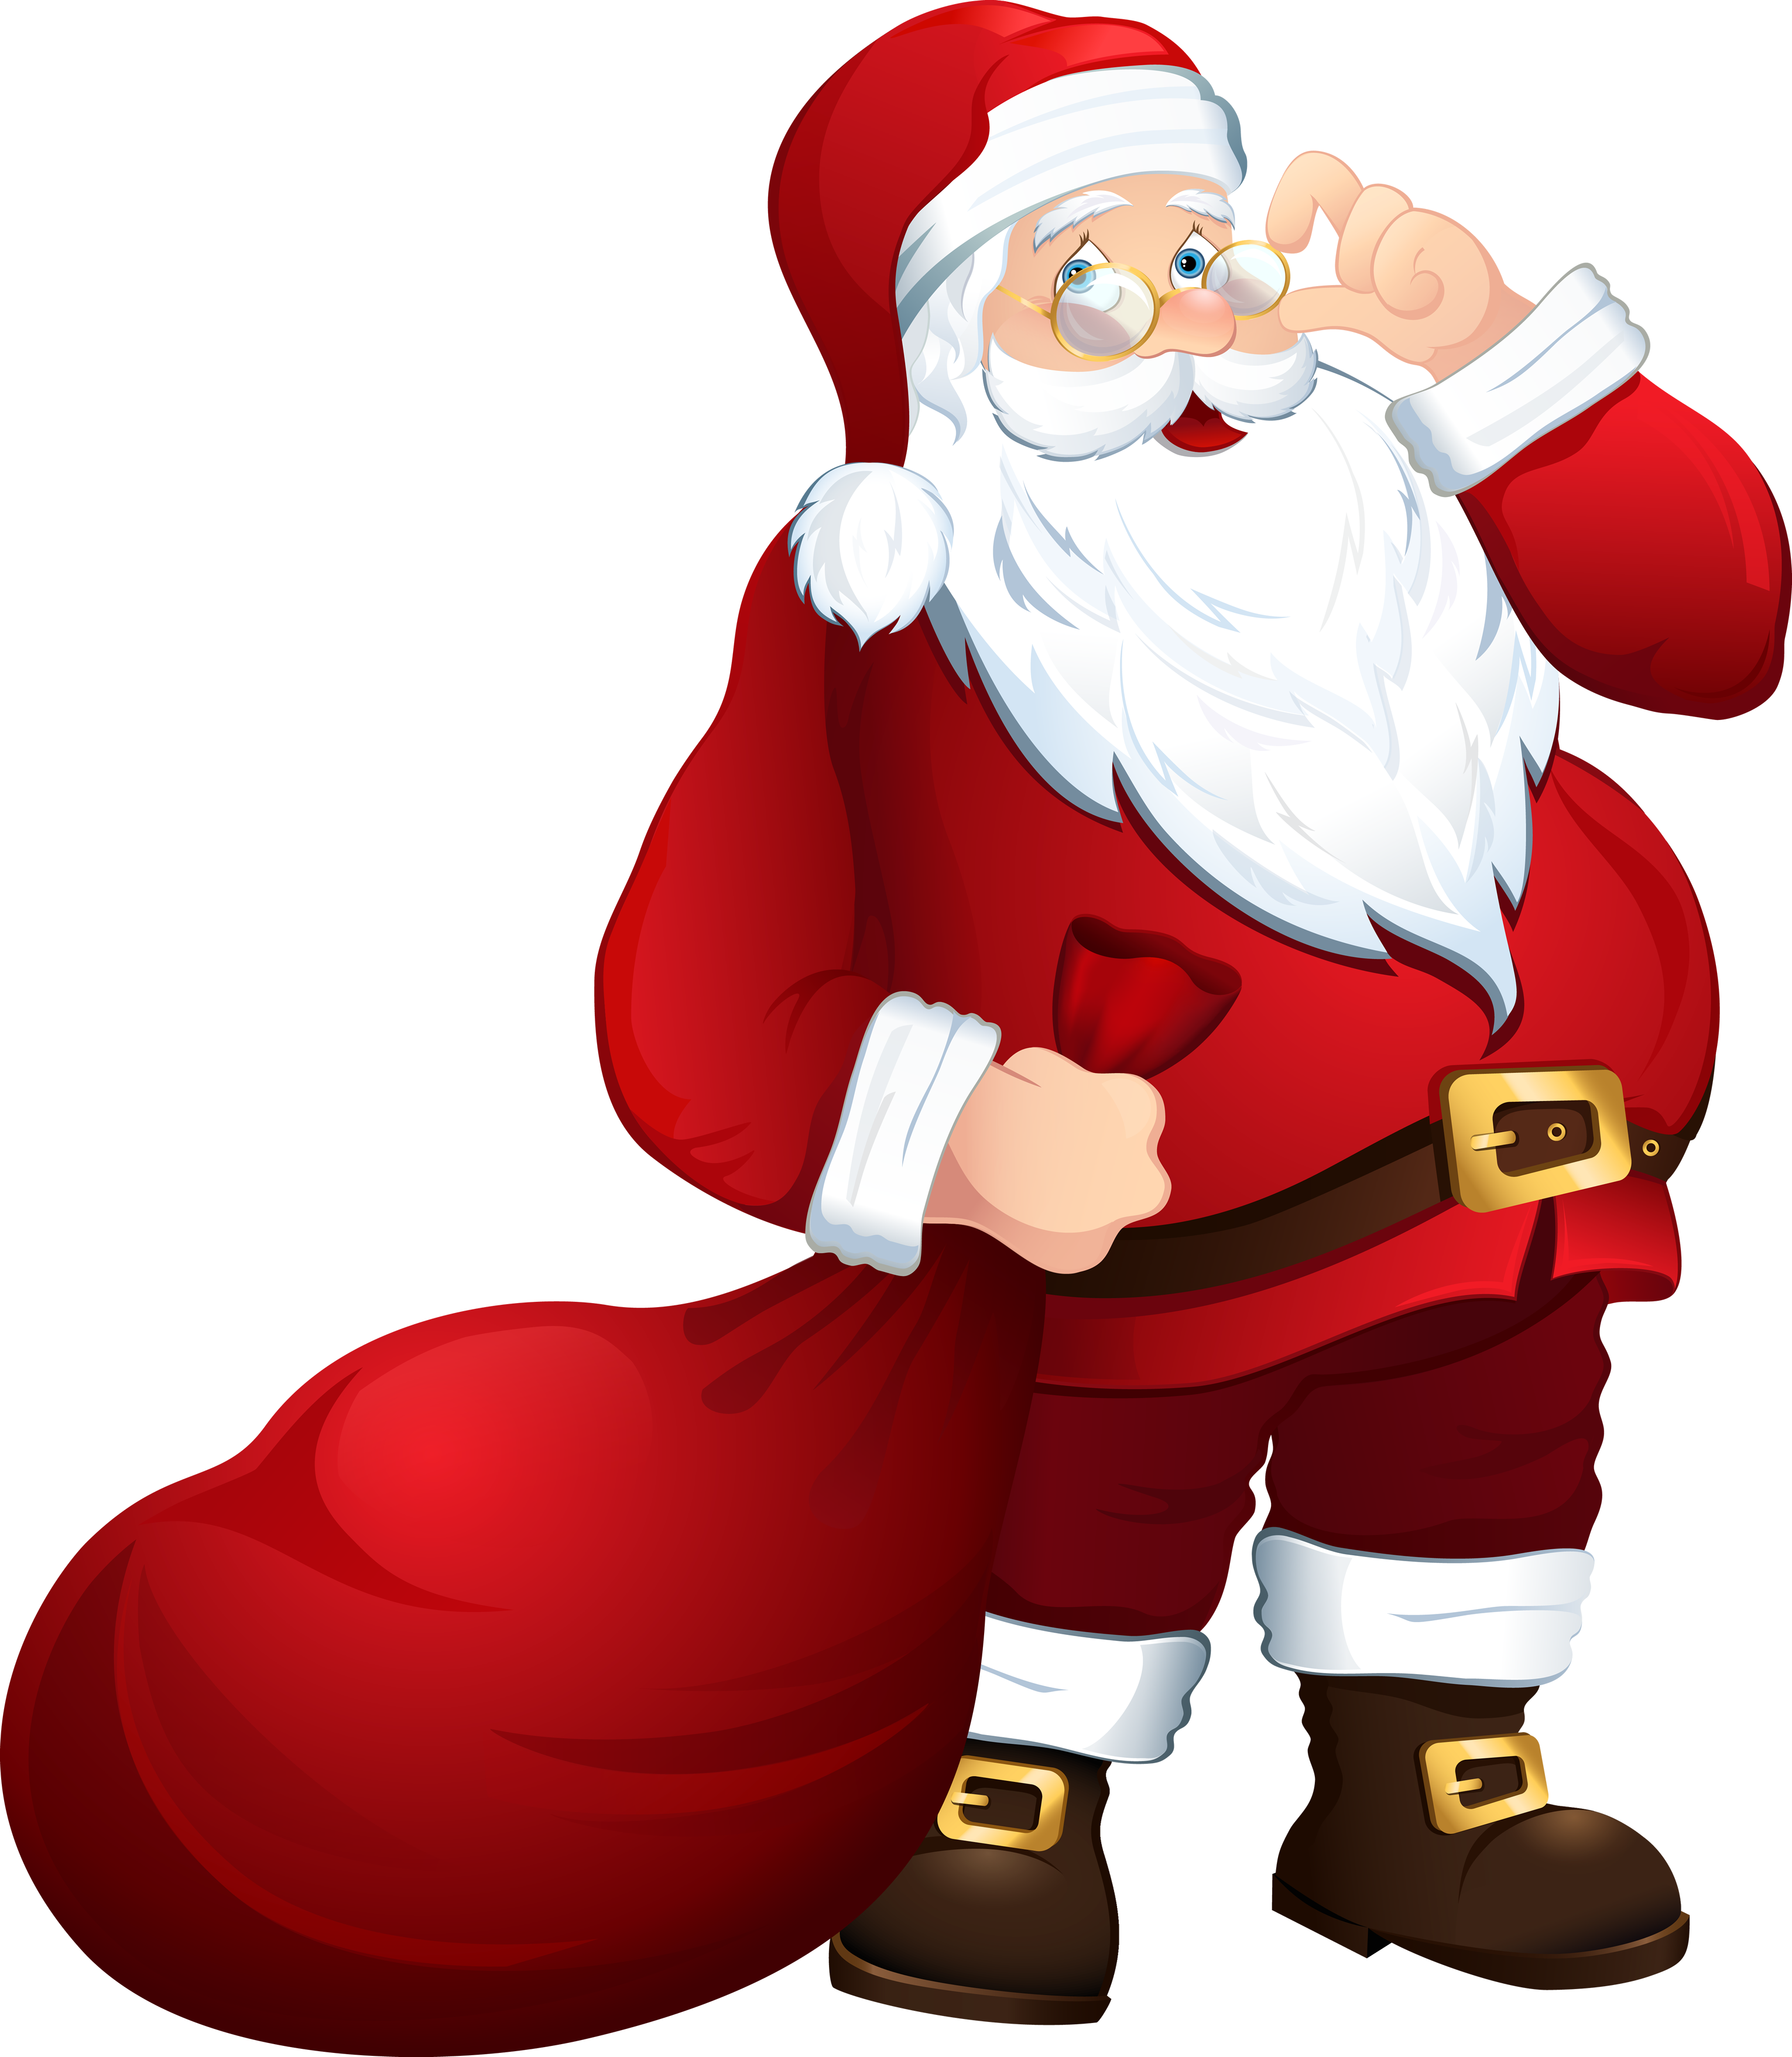 Sunglasses clipart santa. Claus in png free